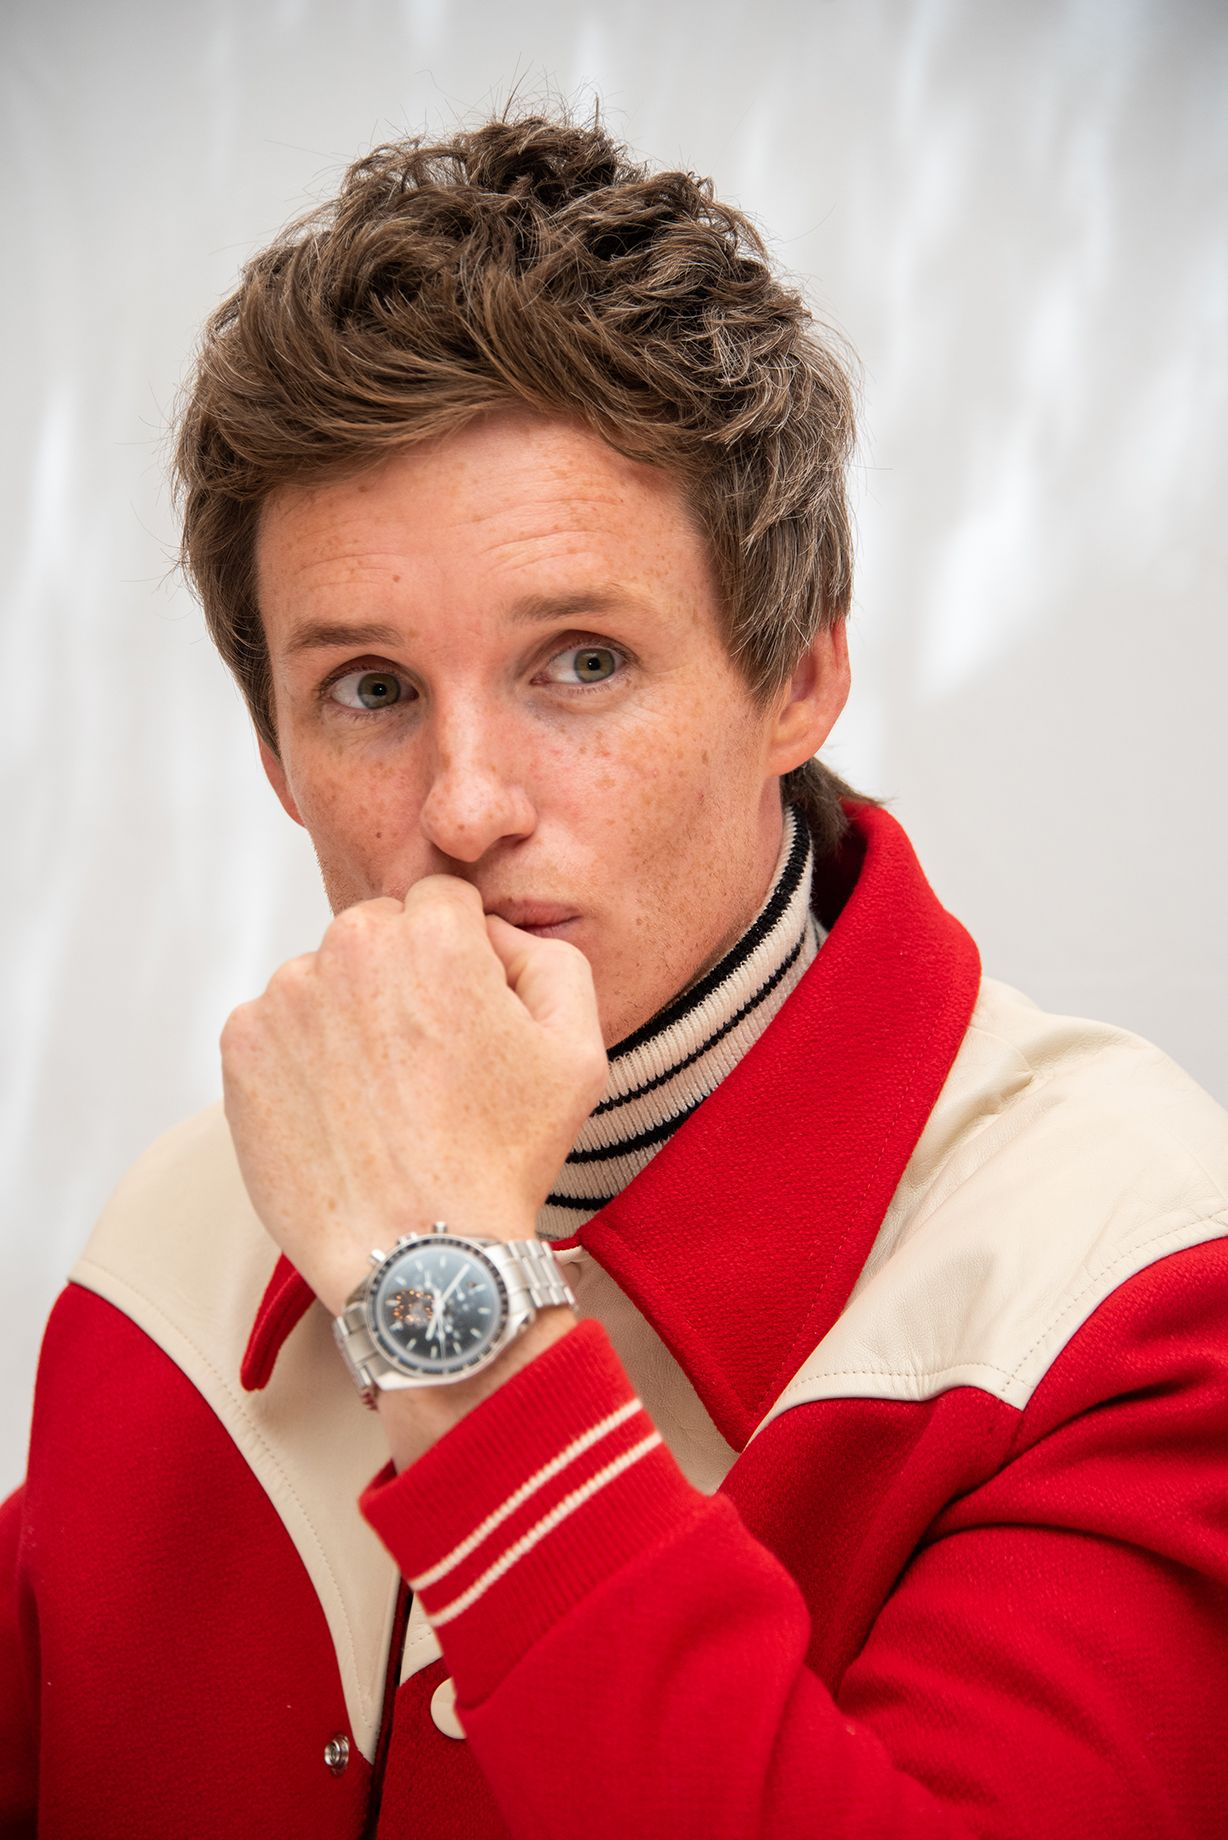 Eddie Redmayne's Watch Is A Master Of The Universe